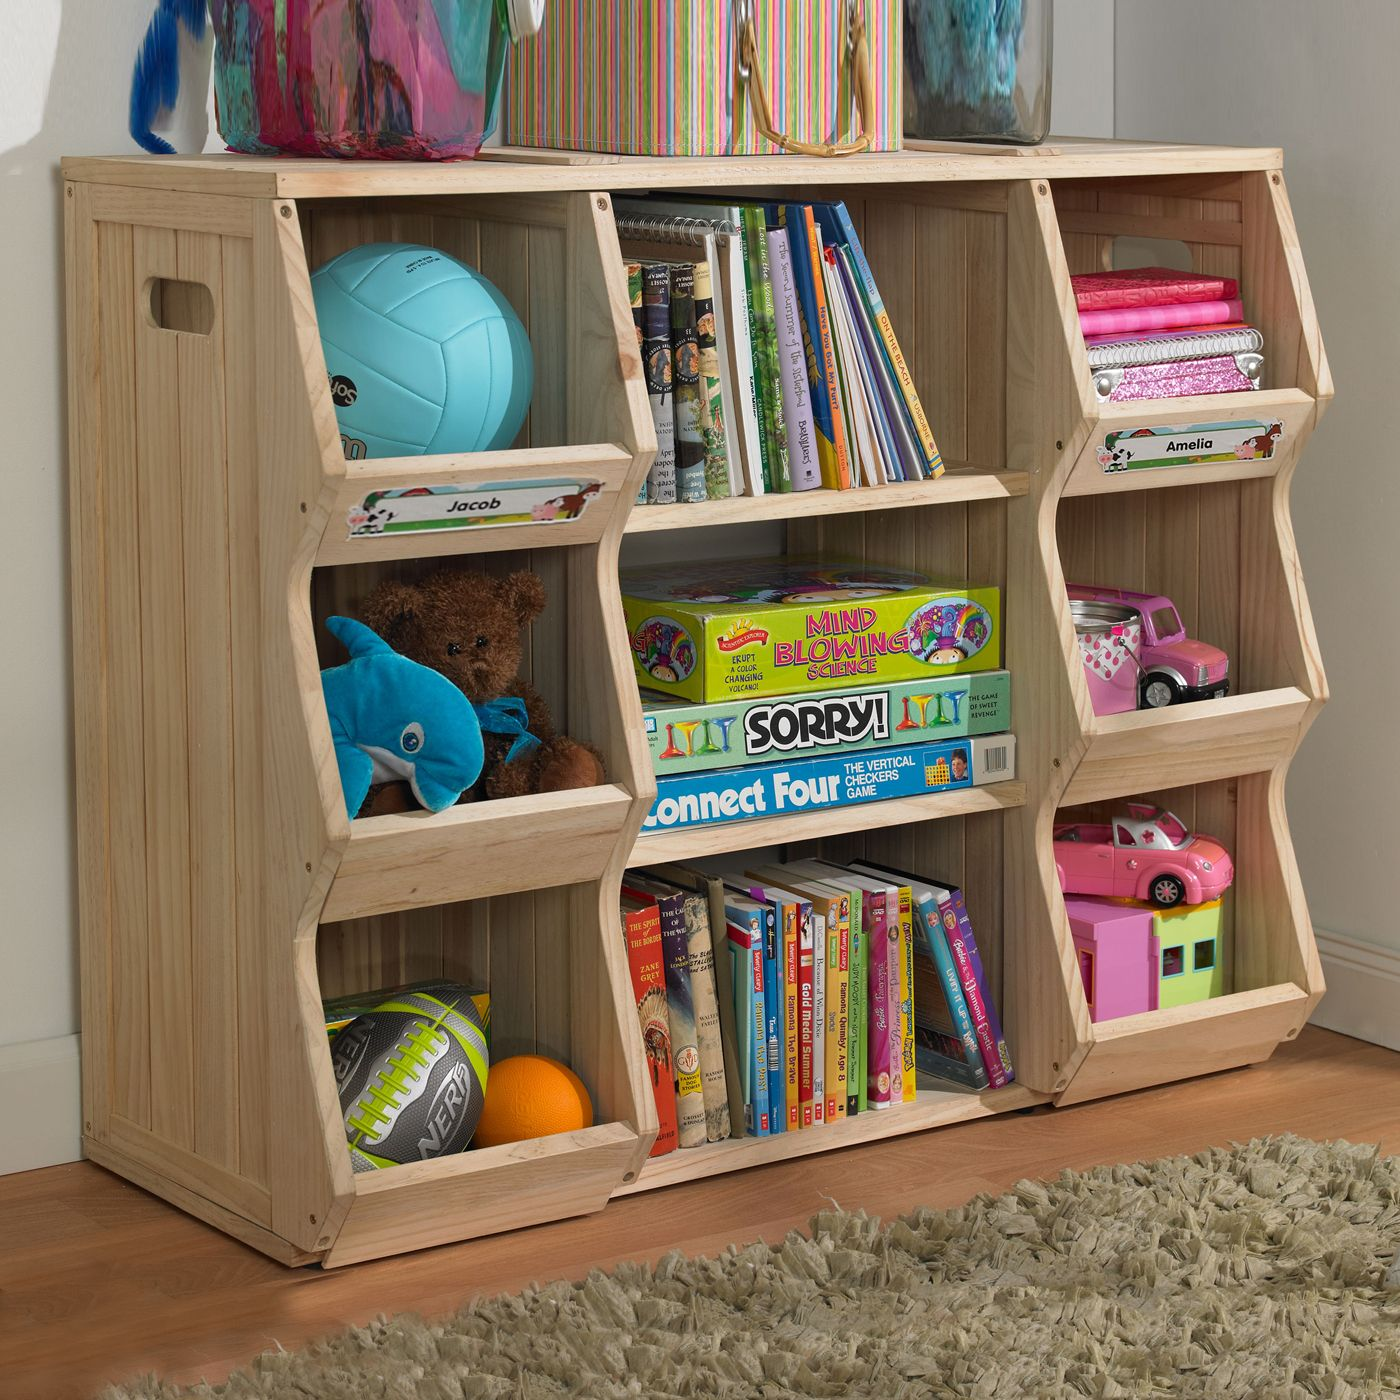 Merry products slf0031901910 children 39 s bookshelf cubby Bookshelves in bedroom ideas